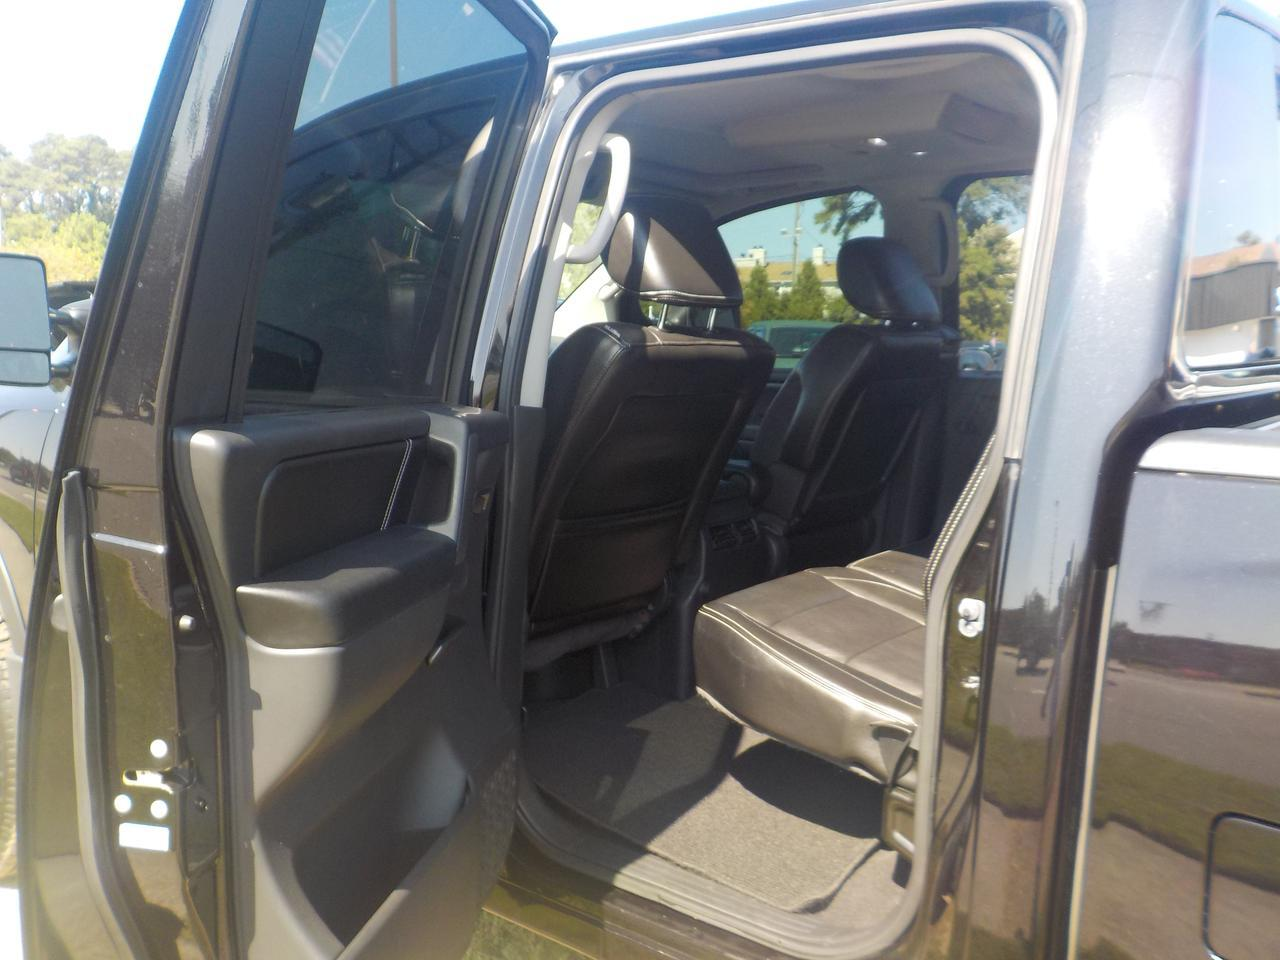 2014 NISSAN TITAN PRO-4X CREW CAB 4X4, NAVIGATION, BLUETOOTH, TOW PACKAGE, SUNROOF, ONLY 68K MILES! Virginia Beach VA